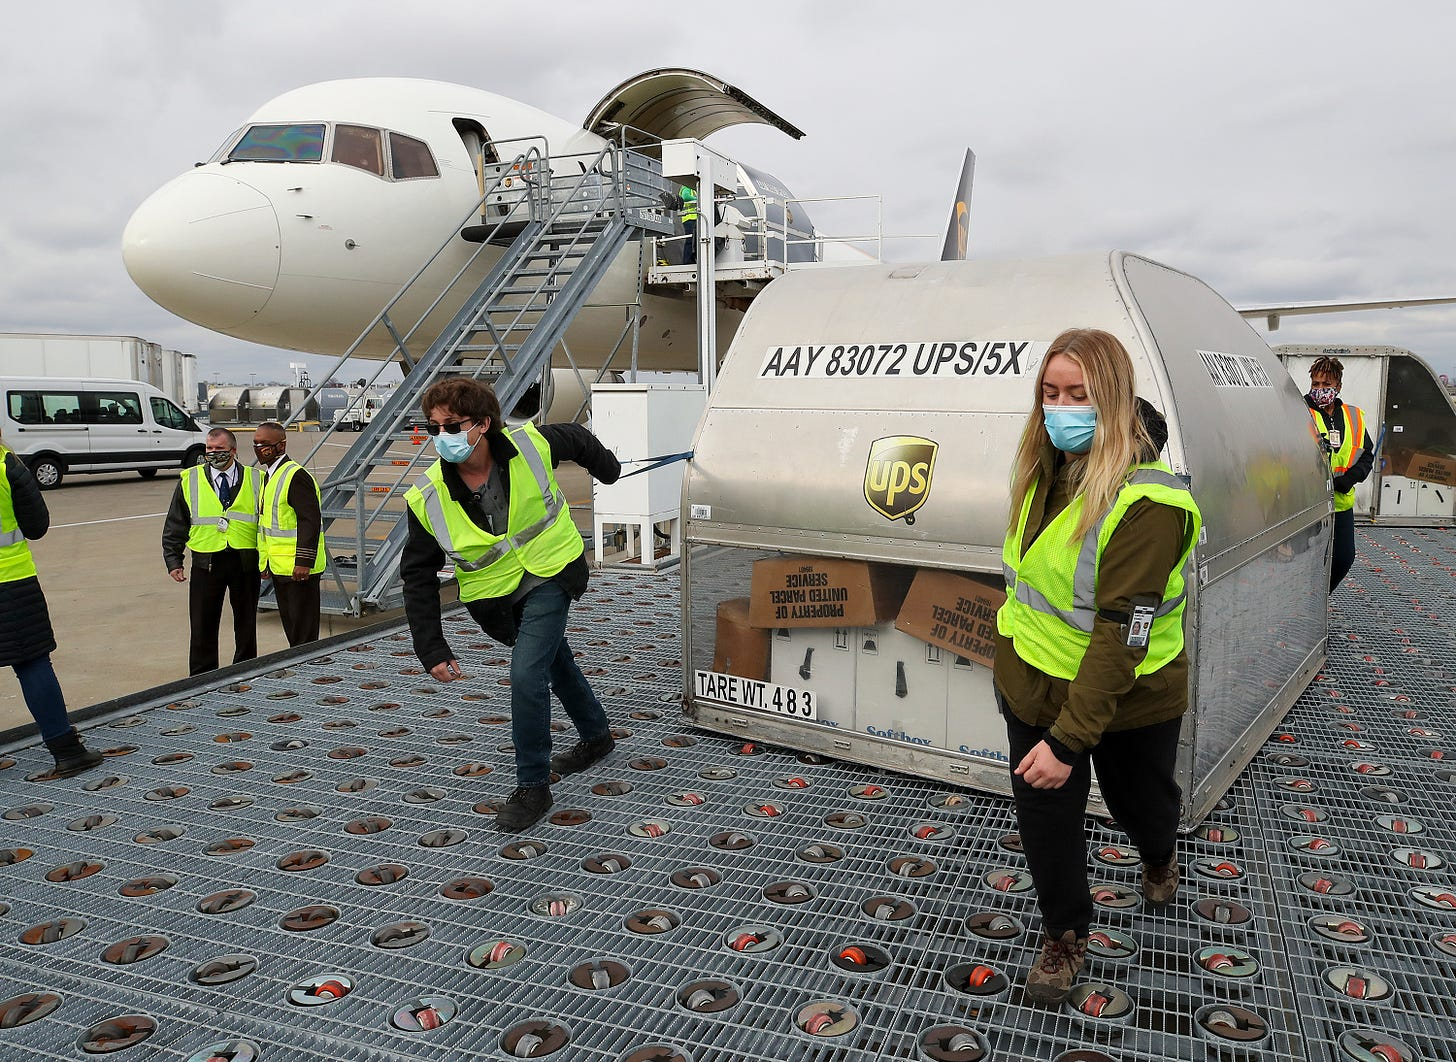 UPS employees move one of two shipping containers containing the first shipments of the Pfizer and BioNTech COVID-19 vaccine a ramp at UPS Worldport in Louisville, Kentucky, on December 13, 2020. The flight originated in Lansing, Michigan. (Photo by Michael Clevenger - Pool/Getty Images)